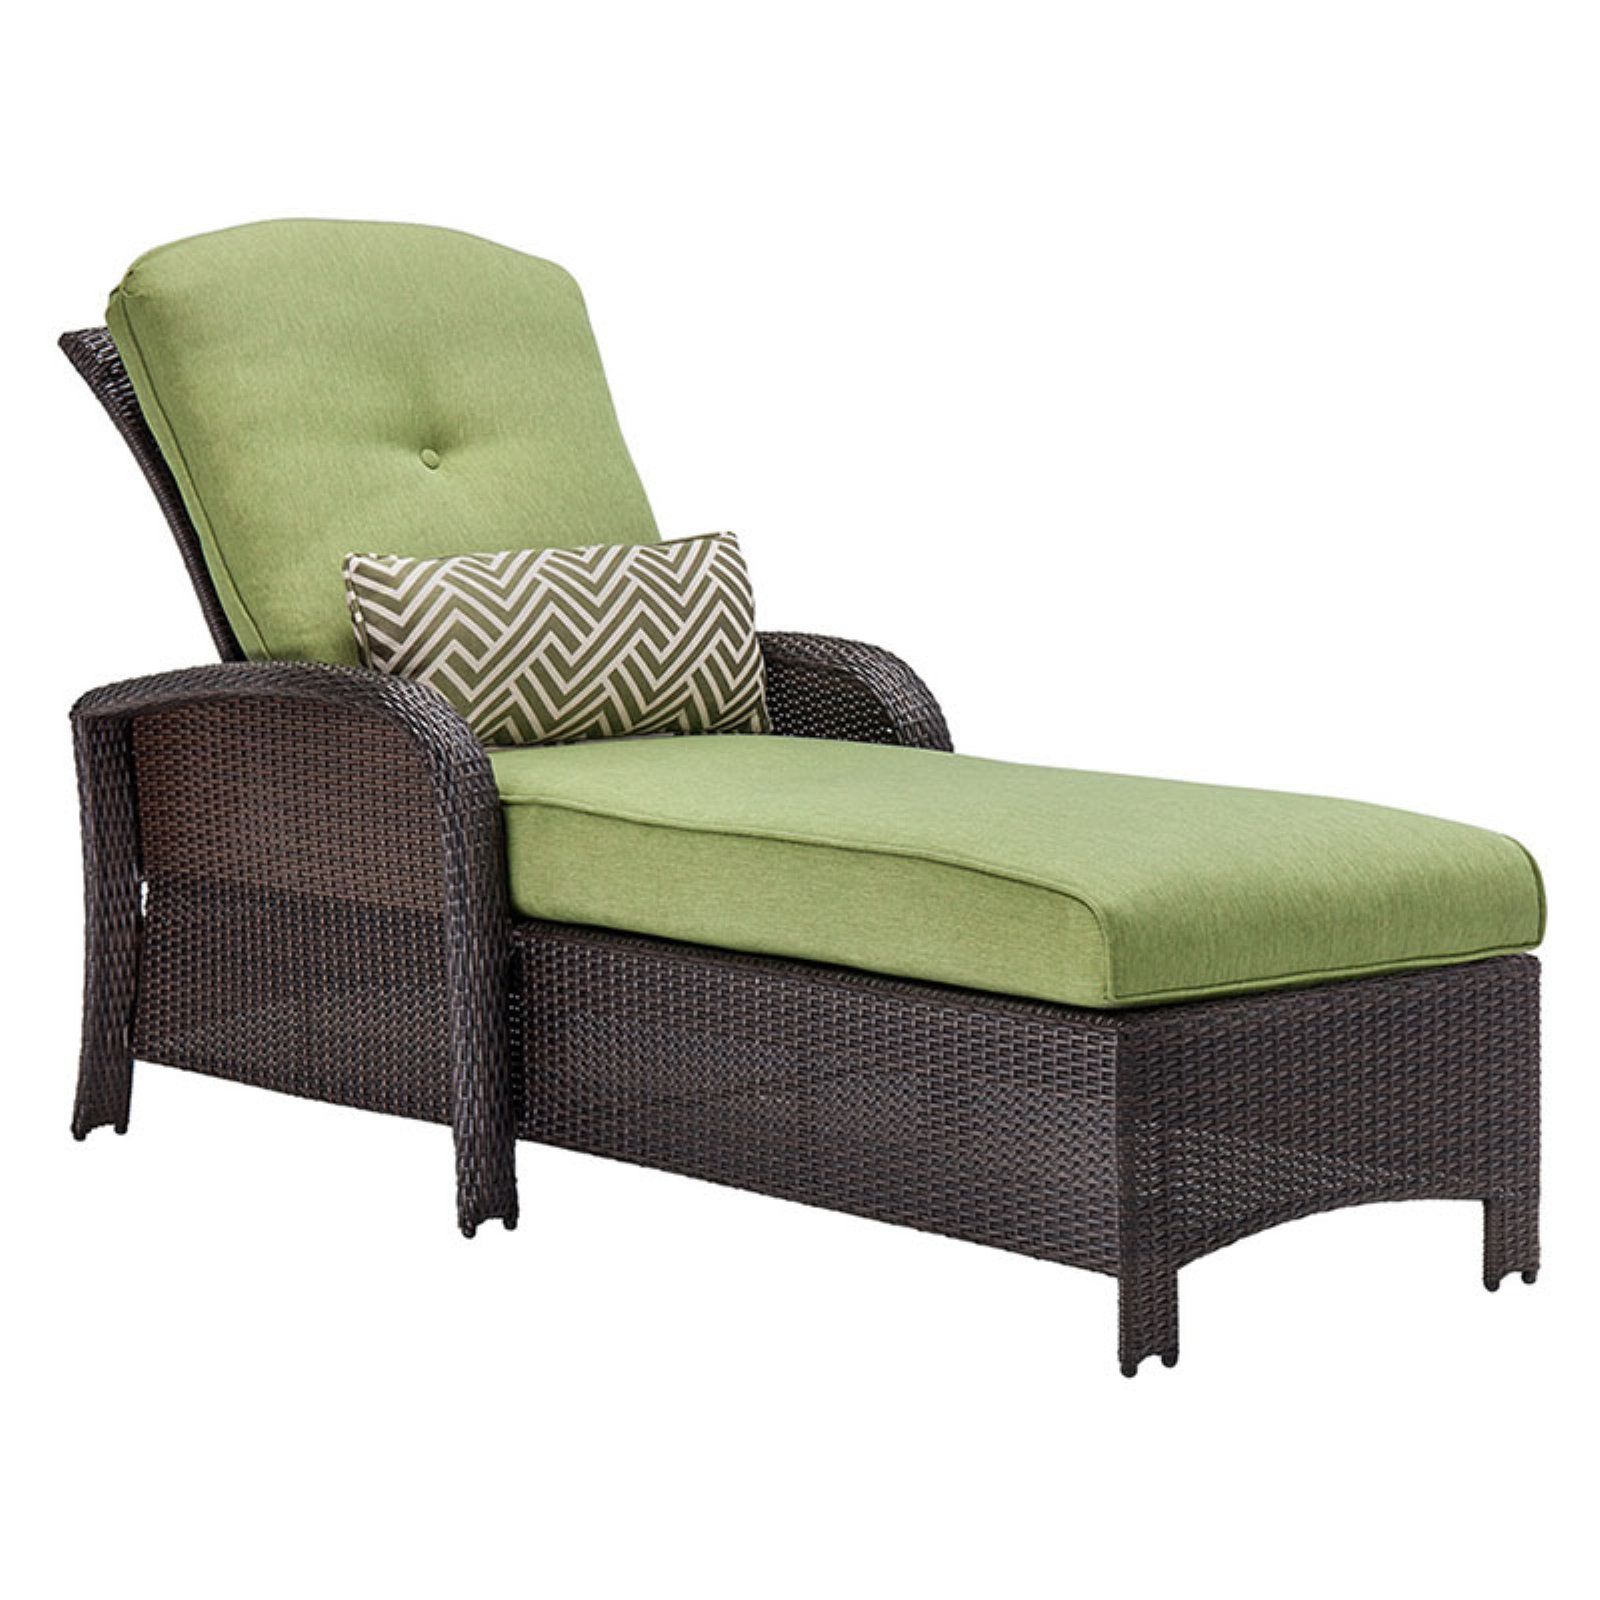 Hanover Strathmere Outdoor Luxury Chaise Lounge, Cilantro Green by Chaise Lounges